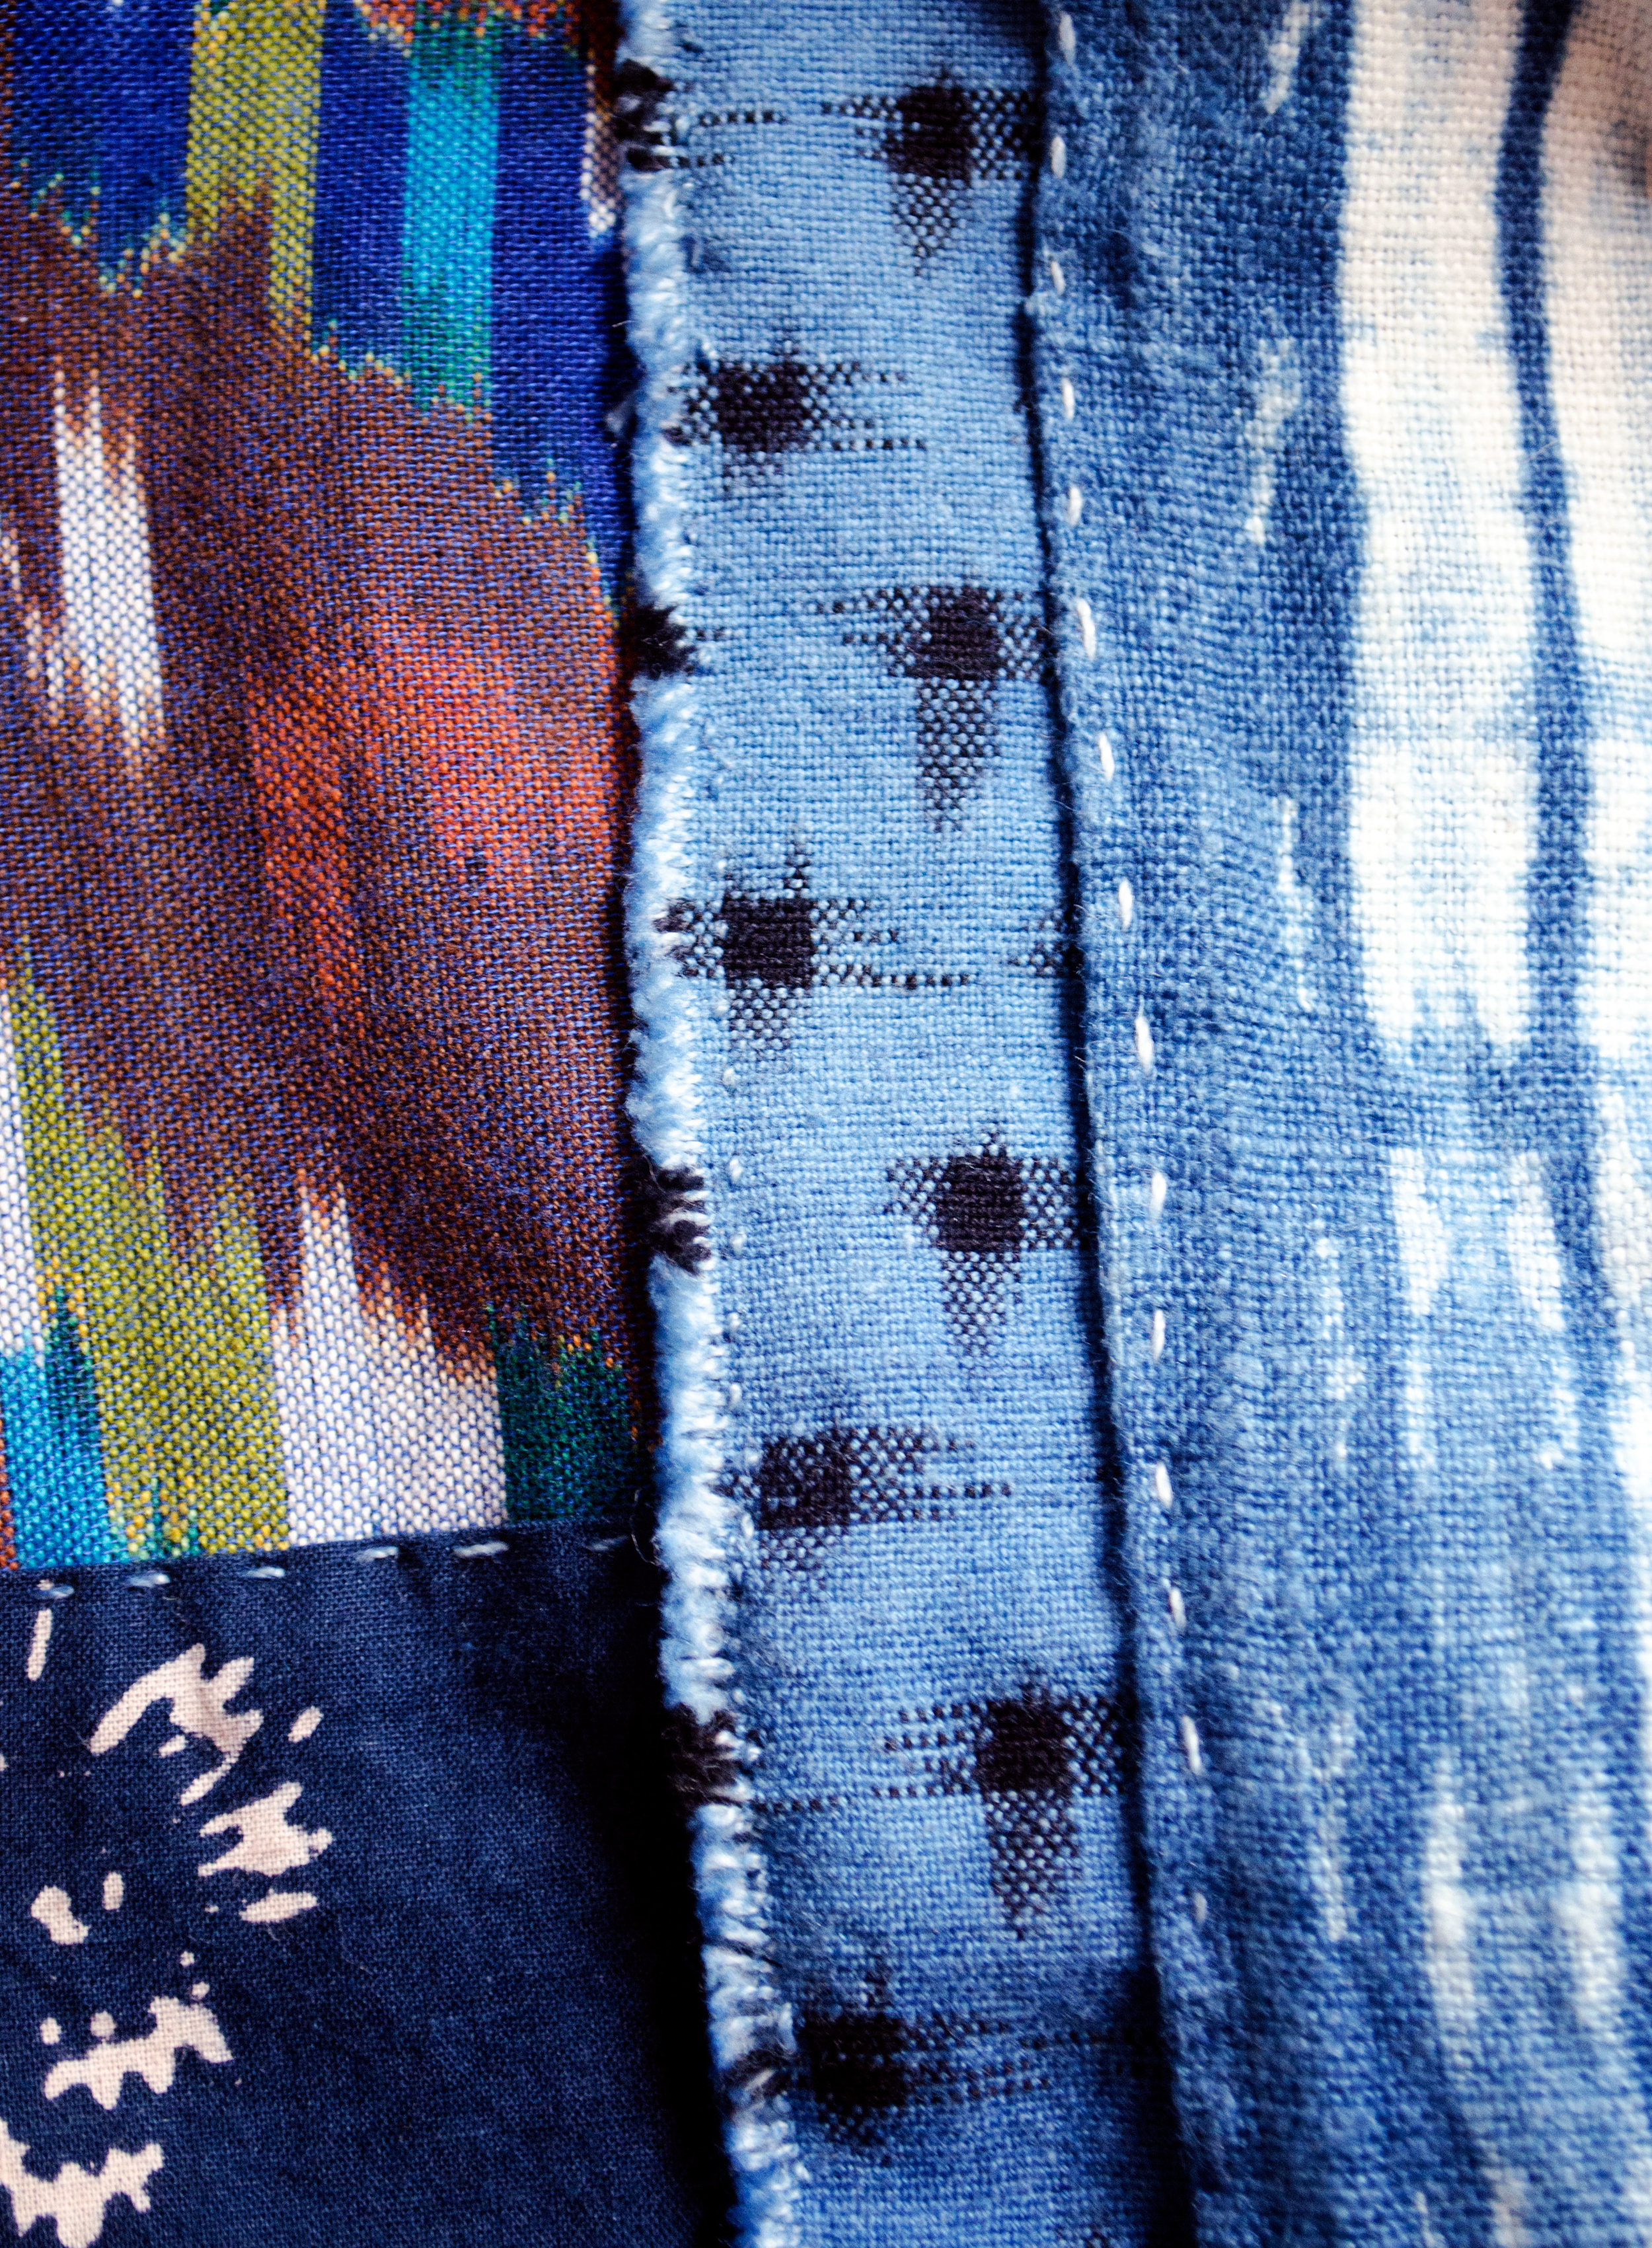 Hand-dyed cottons patched in the boro tradition.